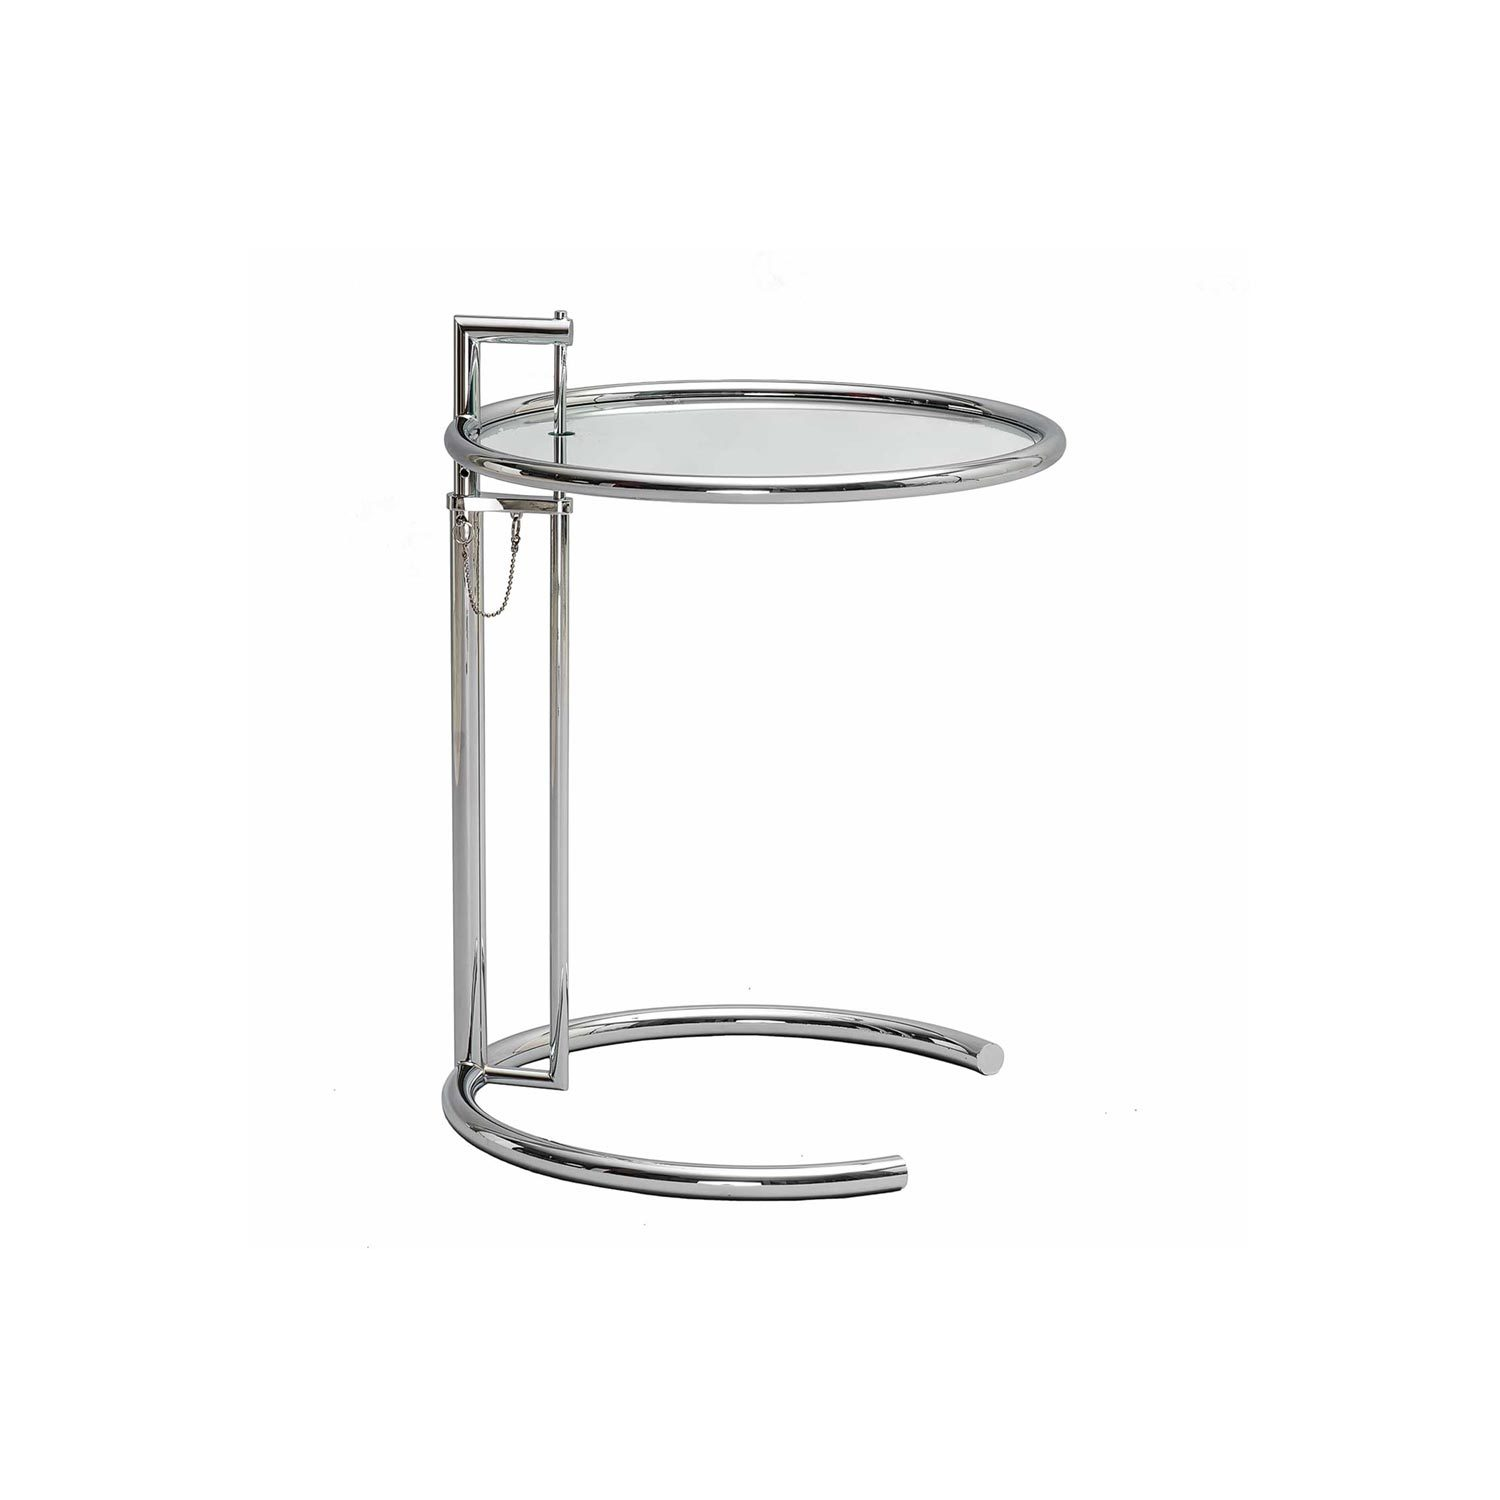 Eileen Gray Adjustable Table